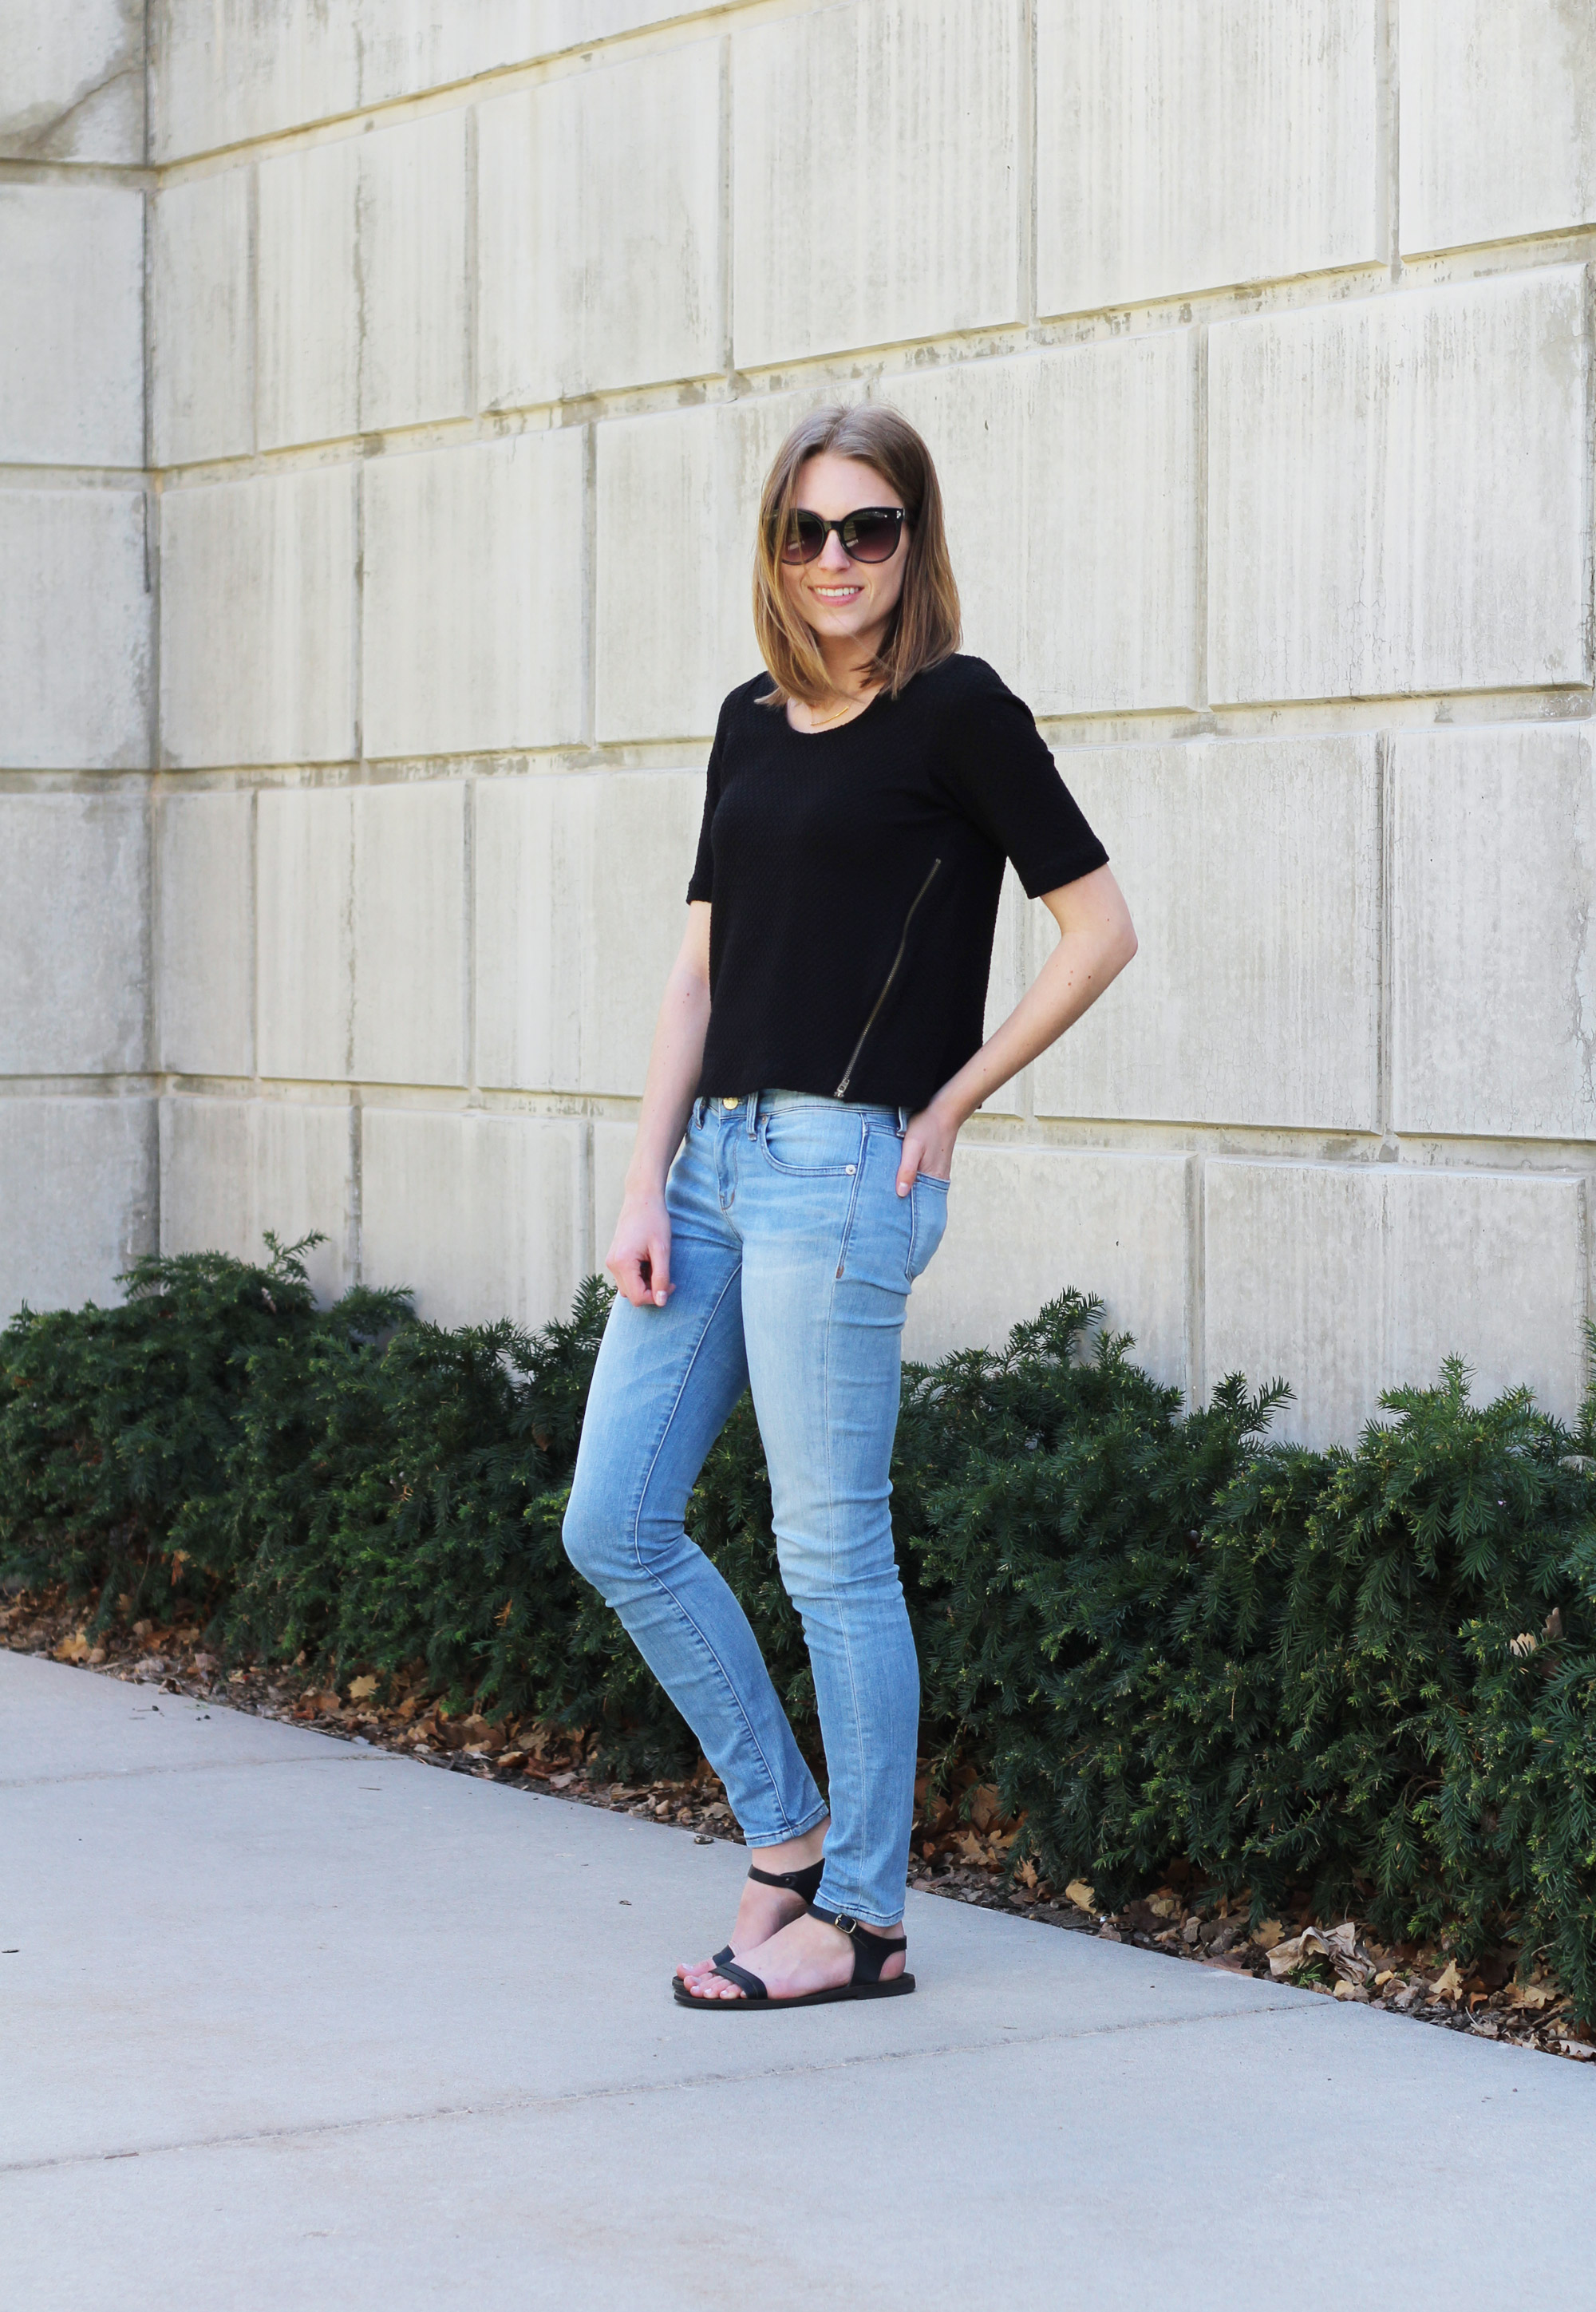 Black Anthropologie top, light wash Madewell skinny jeans, black sandals — Cotton Cashmere Cat Hair